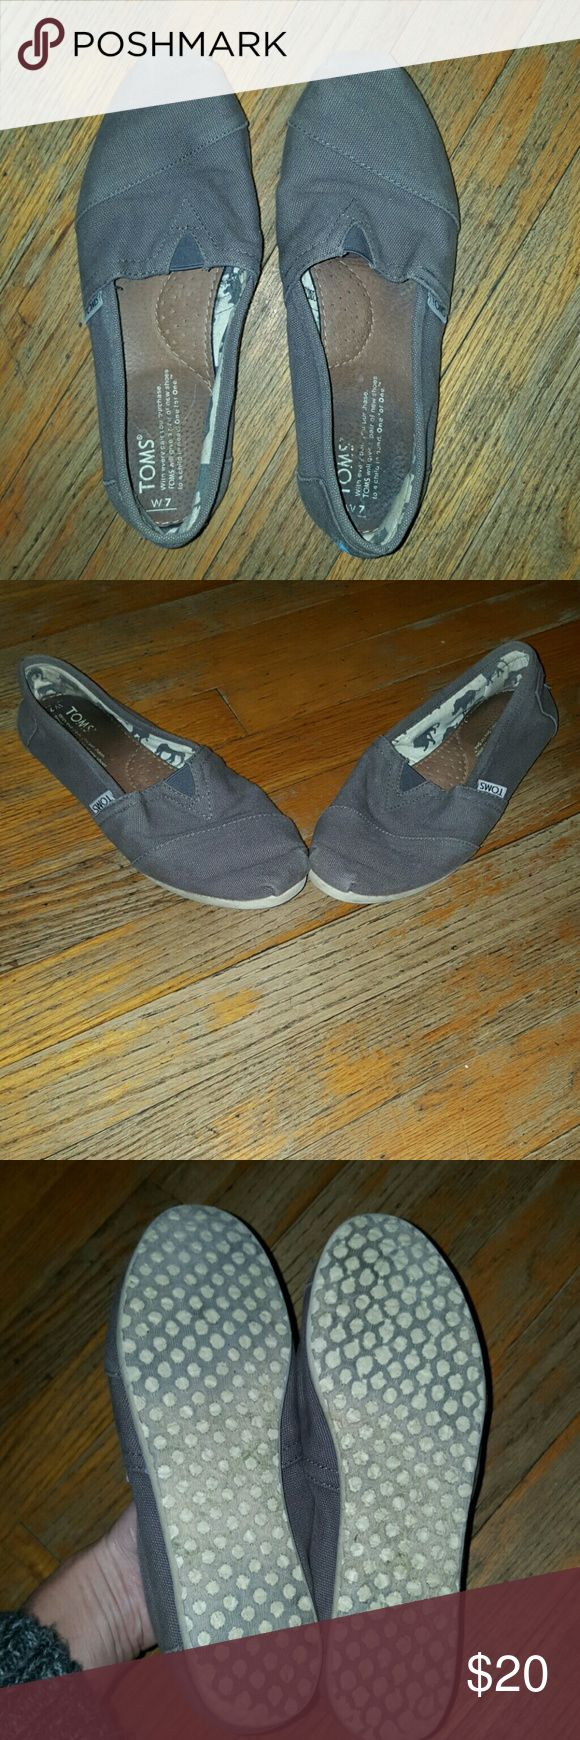 TOMS dark brown shoes 7W TOMS dark brown canvas shoes 7W made small TOMS Shoes Flats & Loafers